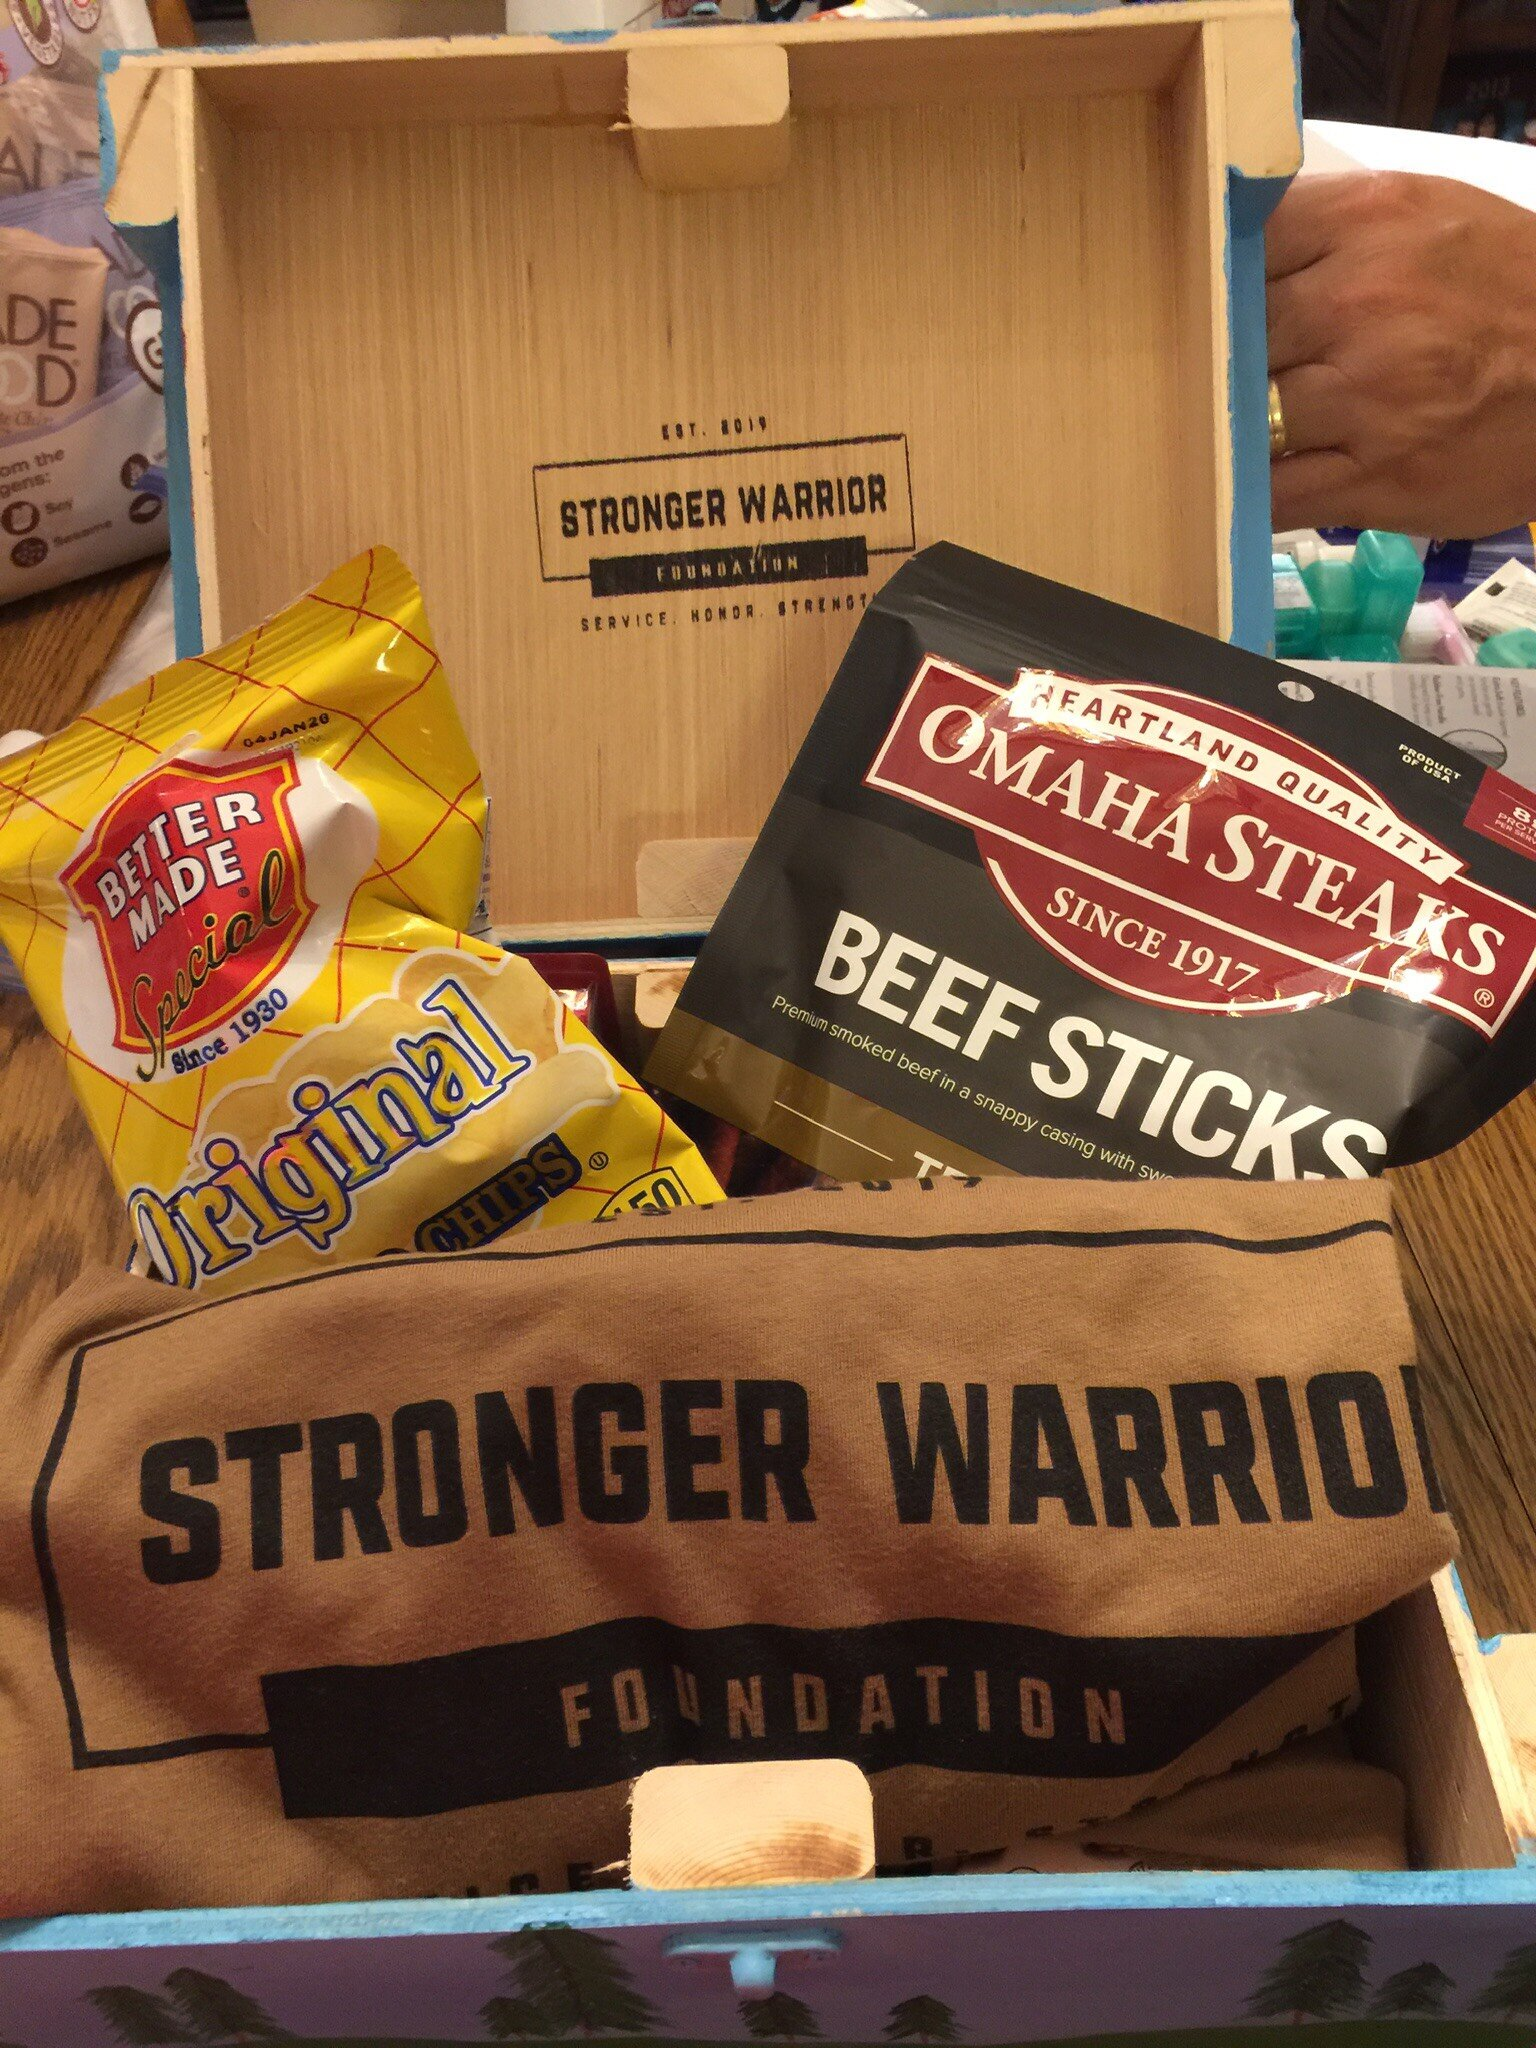 Host a Donation Drive - Help the Stronger Warrior Foundation send care packages to deployed soldiers overseas by having your organization, team, or group host a donation drive!Ready to start your drive? Just sign up at the bottom of this page and start gathering items on our donation list!